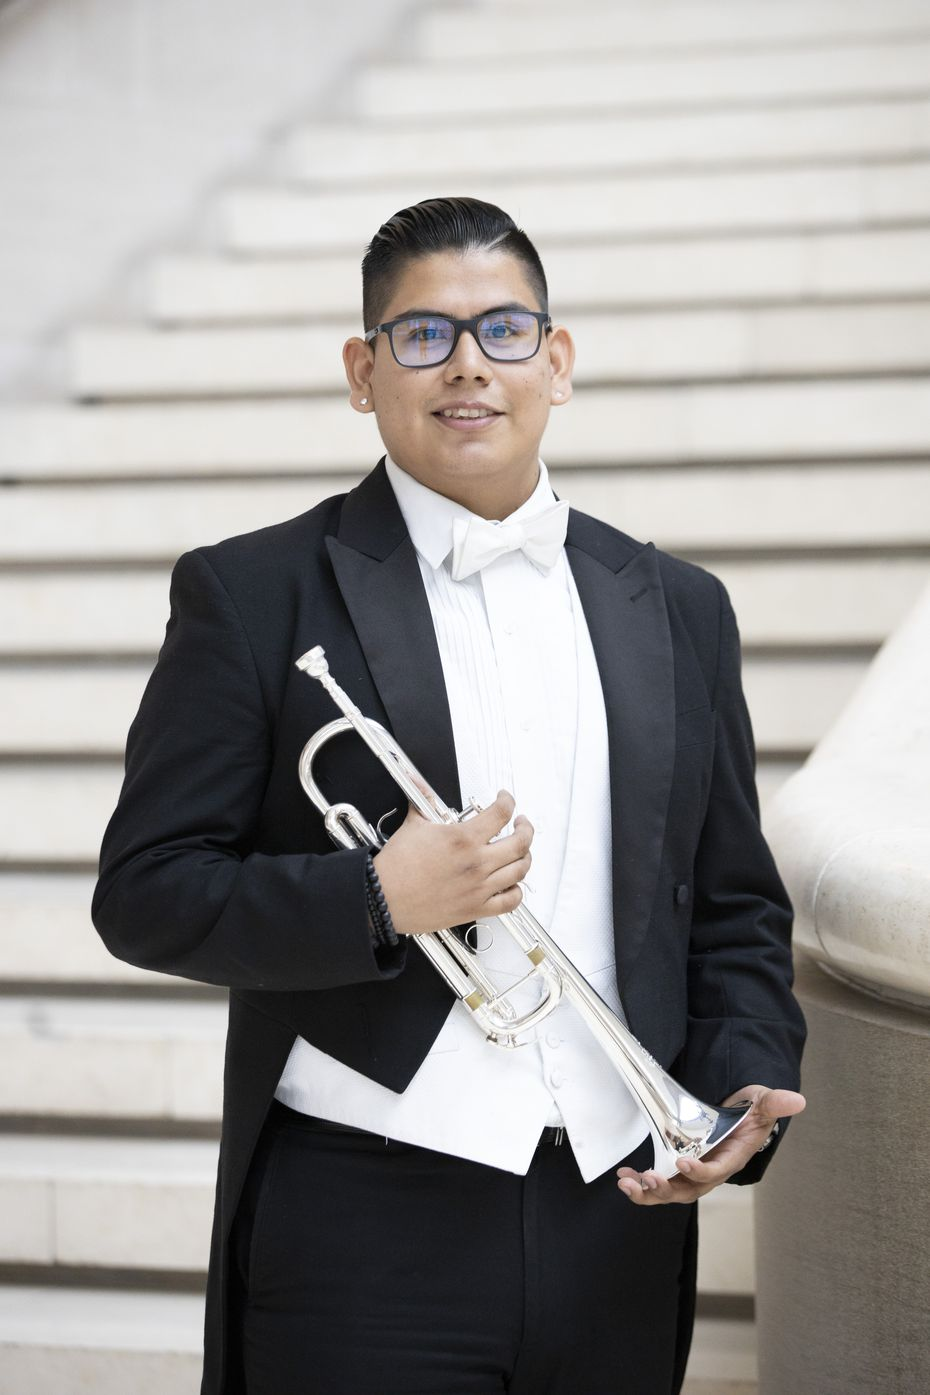 Dallas Symphony trumpeter Elmer Churampi is one of 14 musicians around the country who've recorded two pieces to honor the inauguration of Joseph Biden and Kamala Harris.